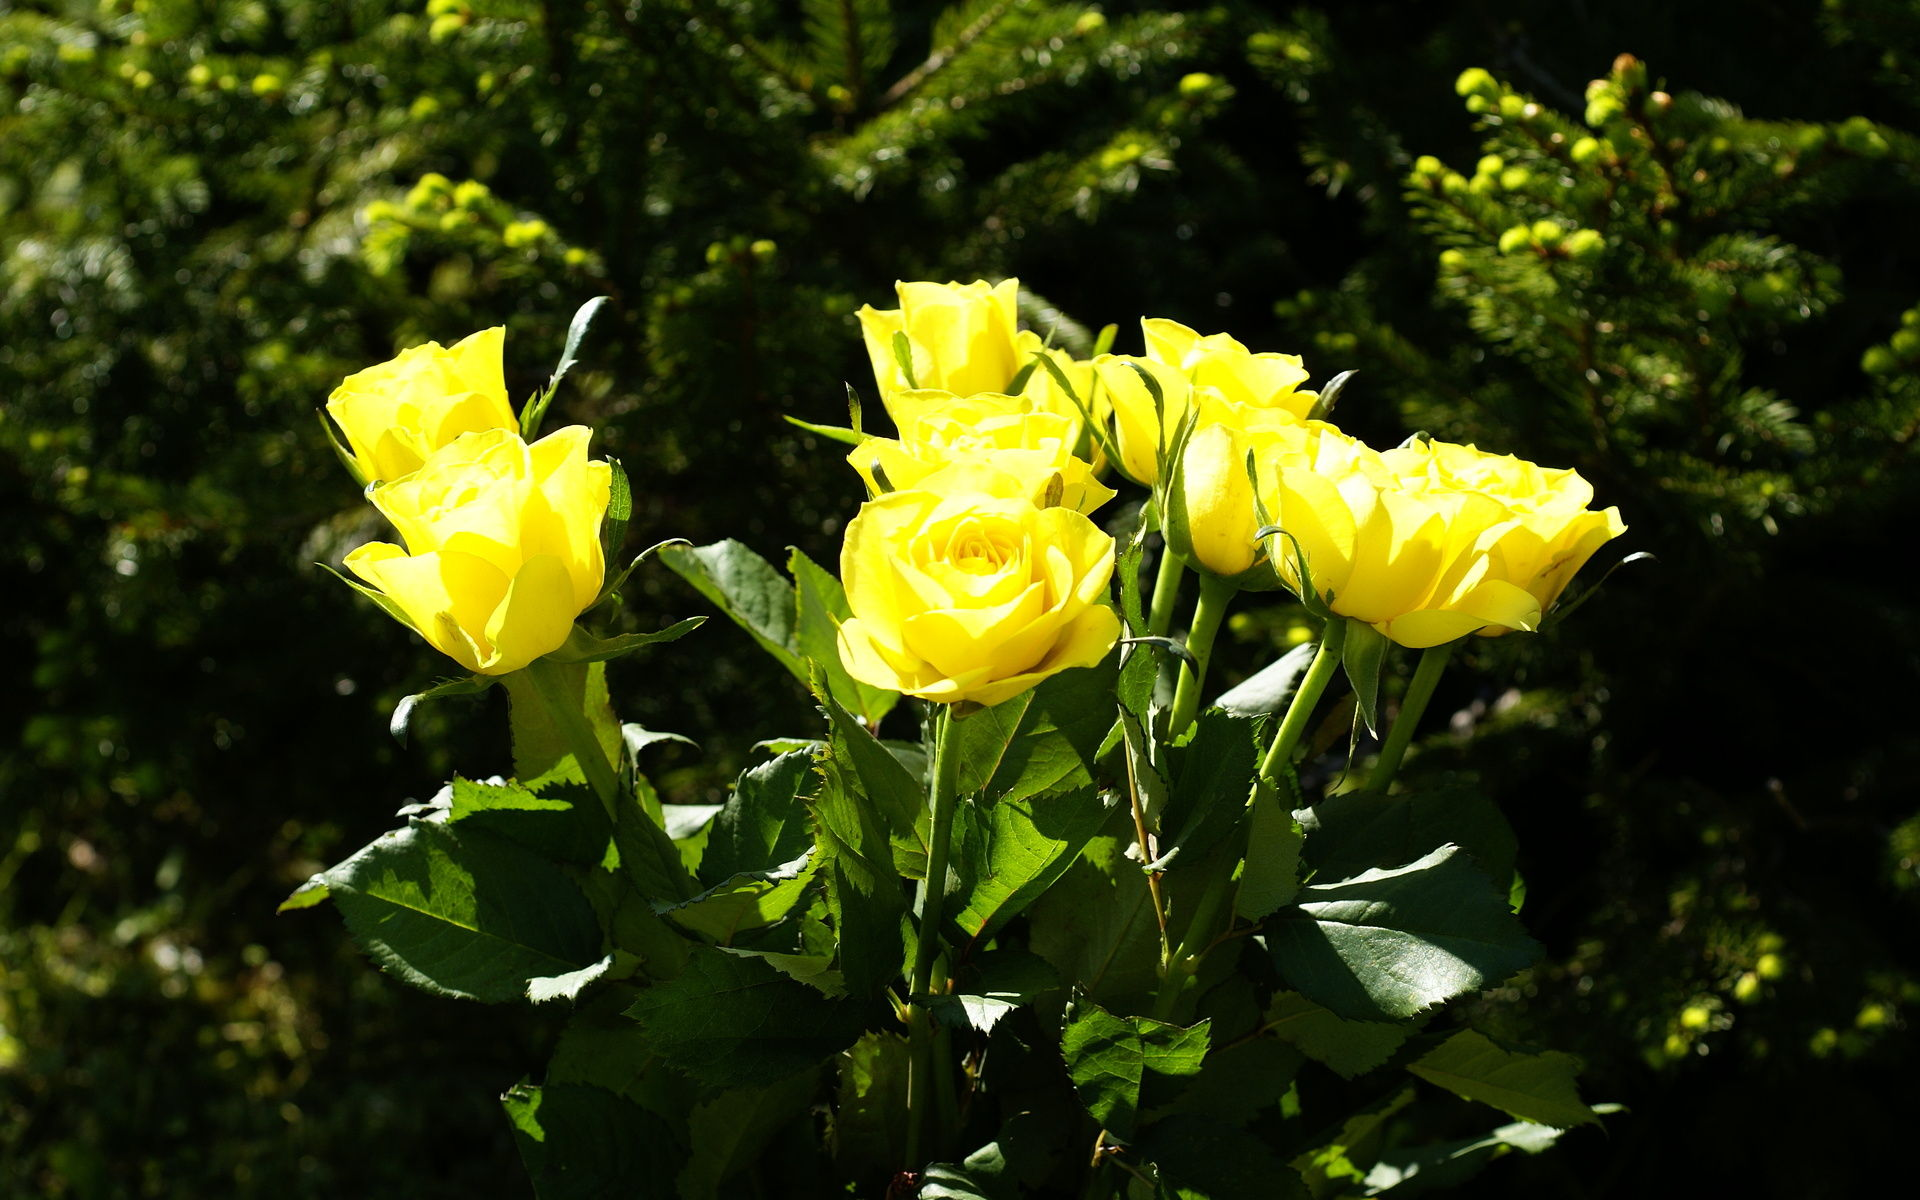 wallpaper of yellow roses - photo #36